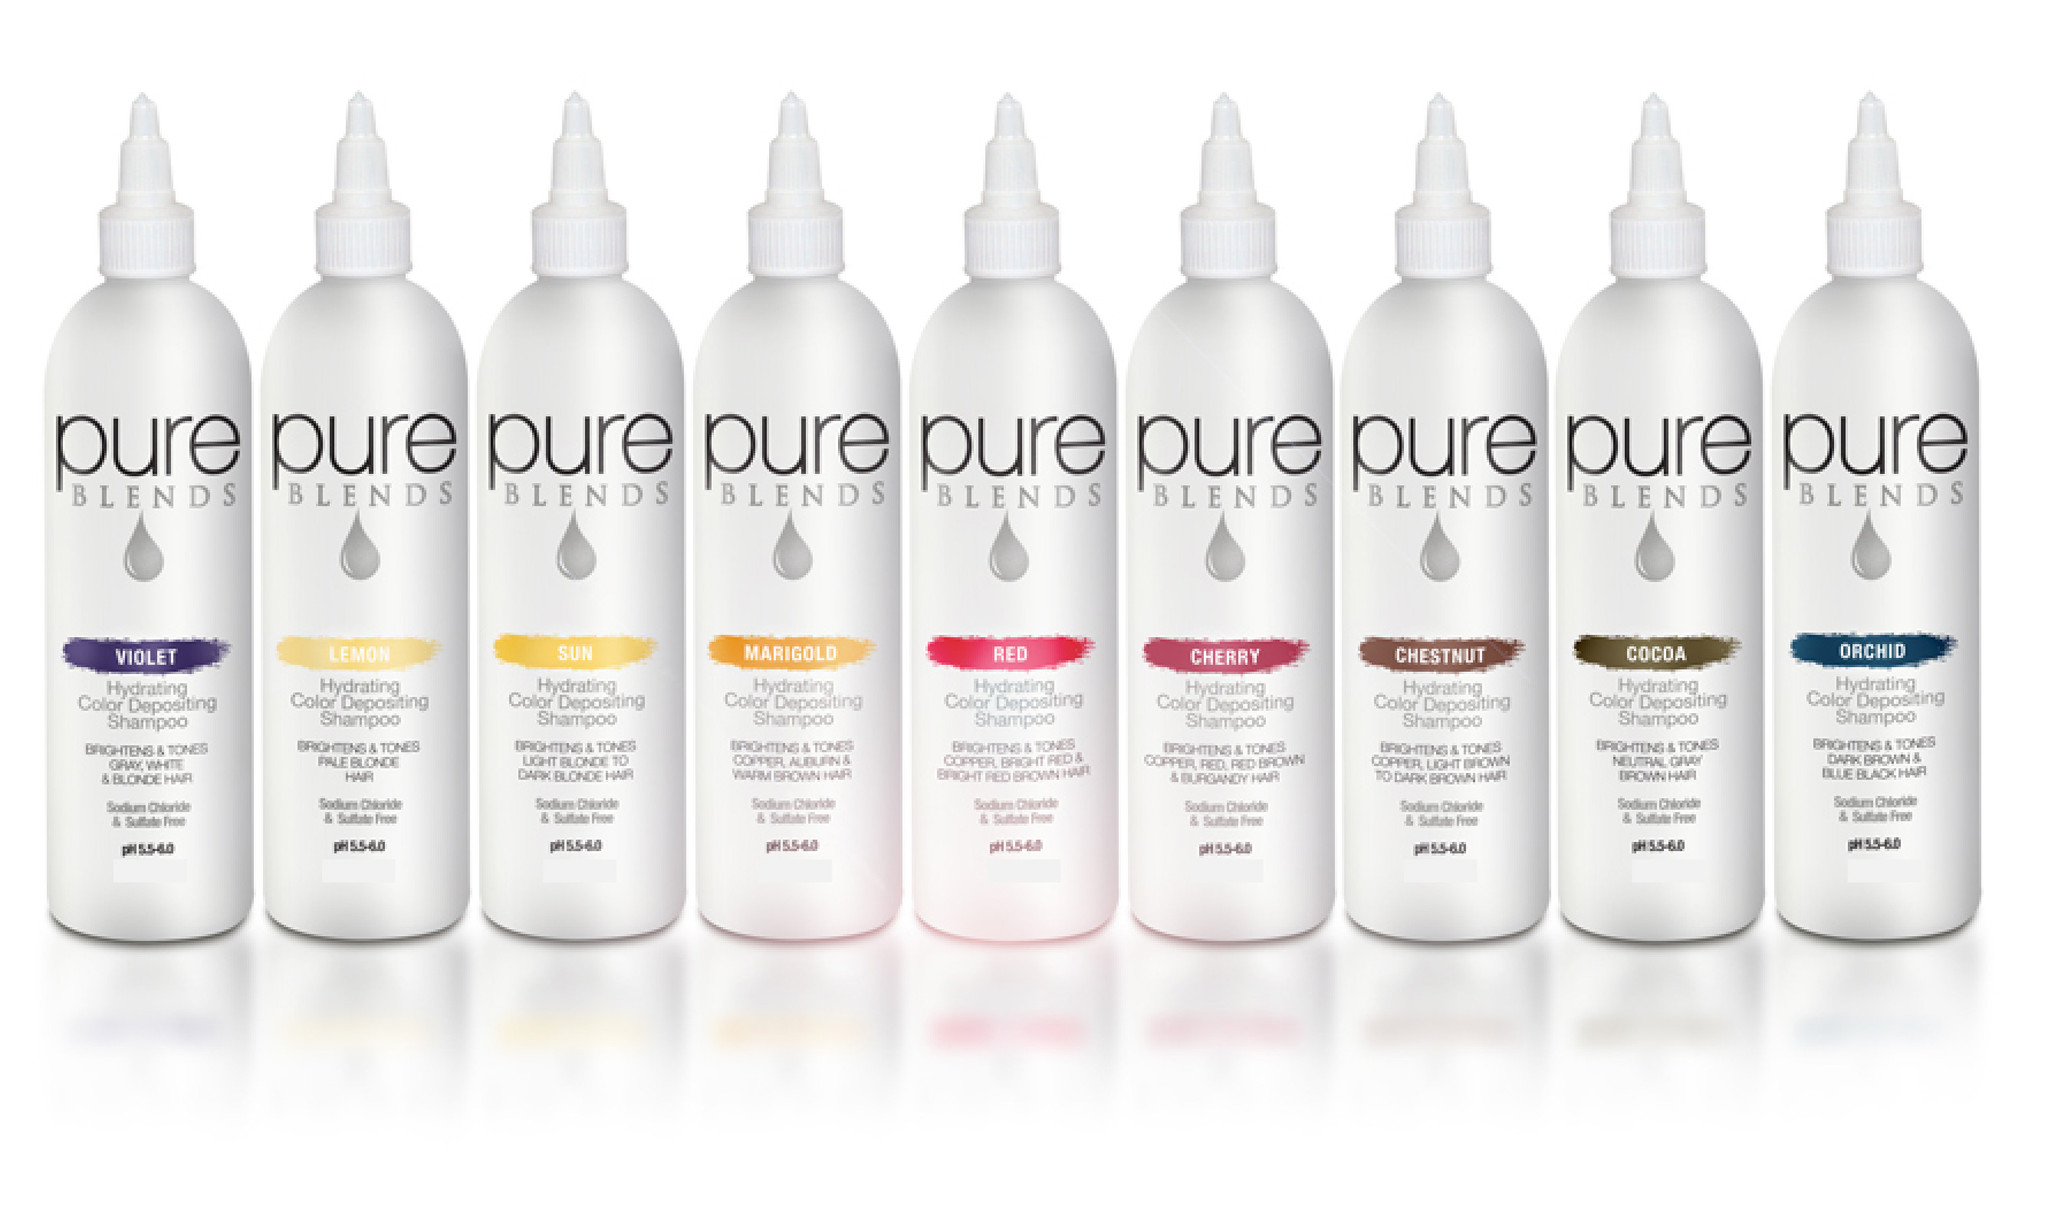 Pure Blends Colour Color Depositing Shampoo  9 different shades 120ml by Shop Salon Support - official distributor of Pure Blends Professional Hair Products, Colour Enhancing Shampoo, Colour Depositing Conditioner & Color Hair Shampoo Australia. Salon Support are Hair & Barber Barbershop Trade Wholesale Hairdressing Supplies Melbourne Australia